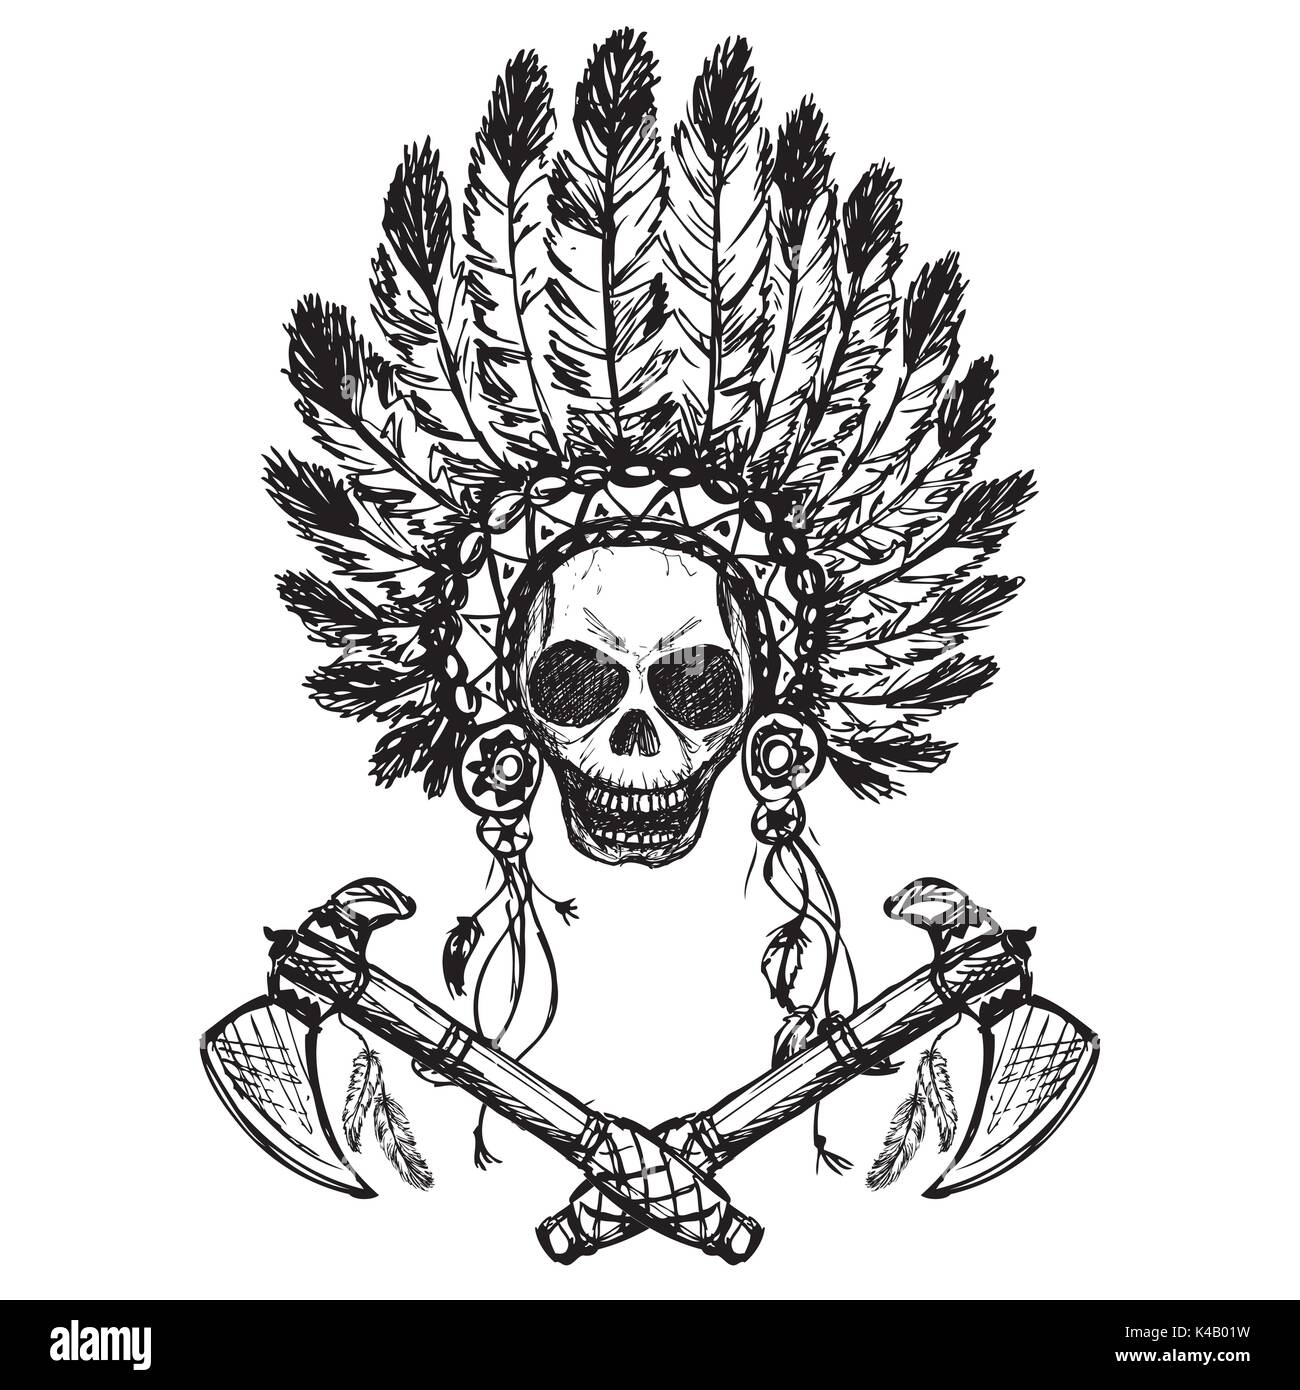 North American Indian chief with tomahawk, hand drawn,black on white, vector - Stock Image